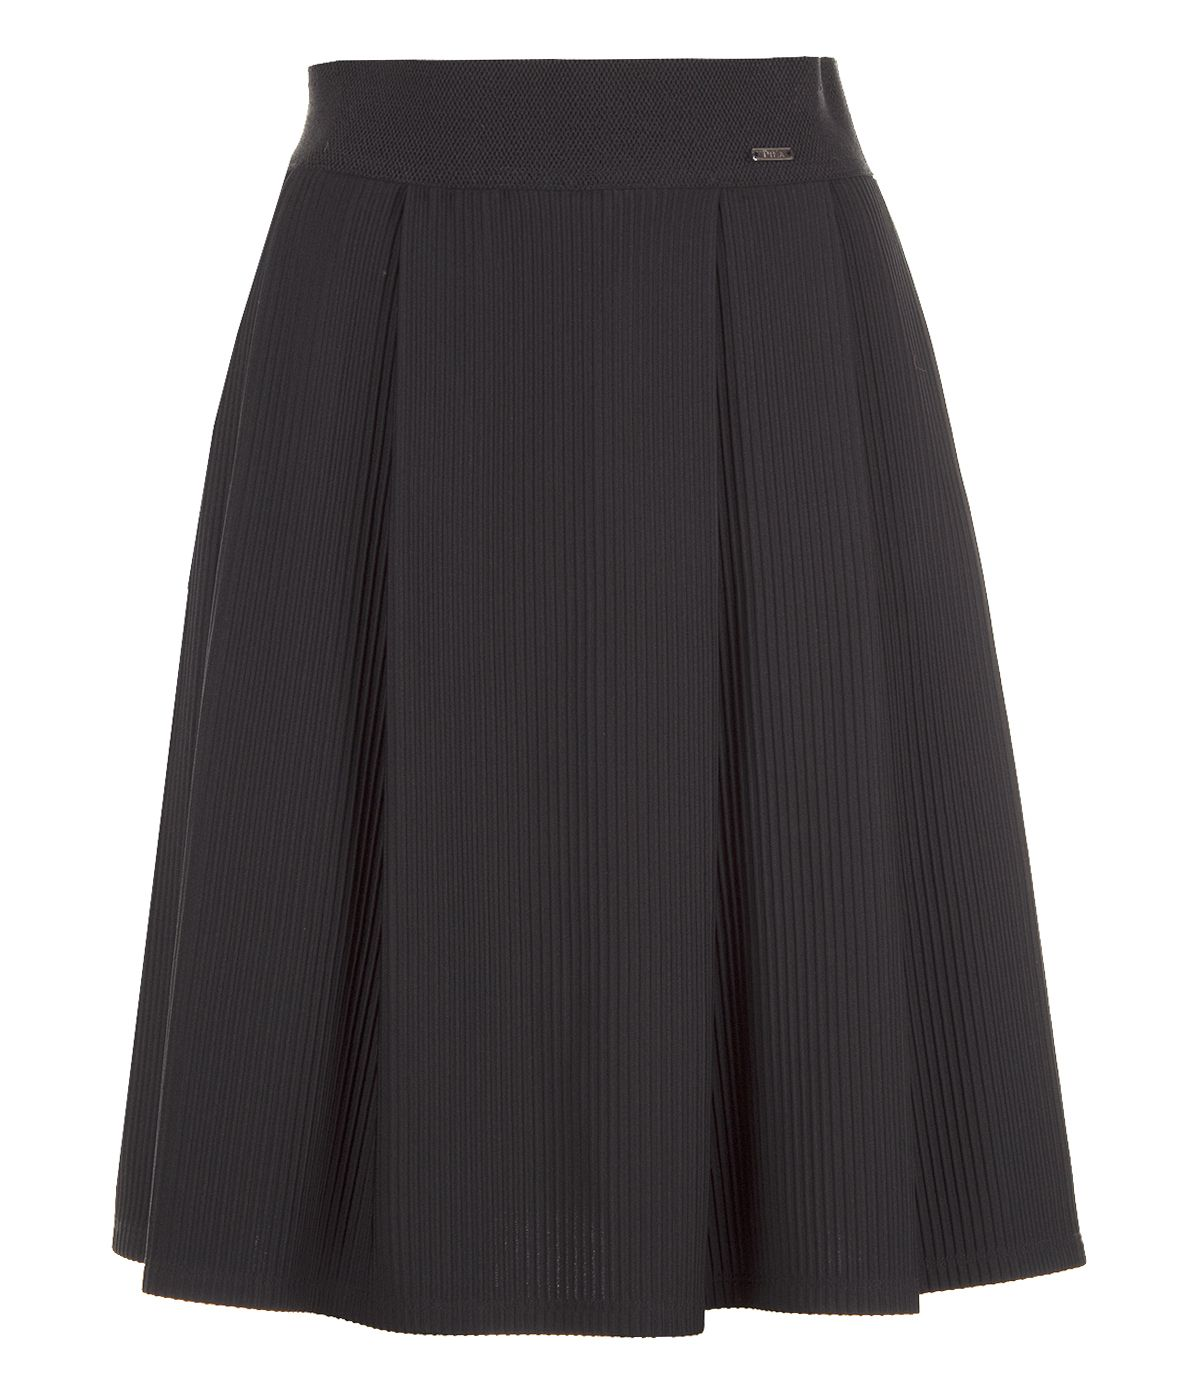 Emphasized wide-waistline skirt with rayon 0